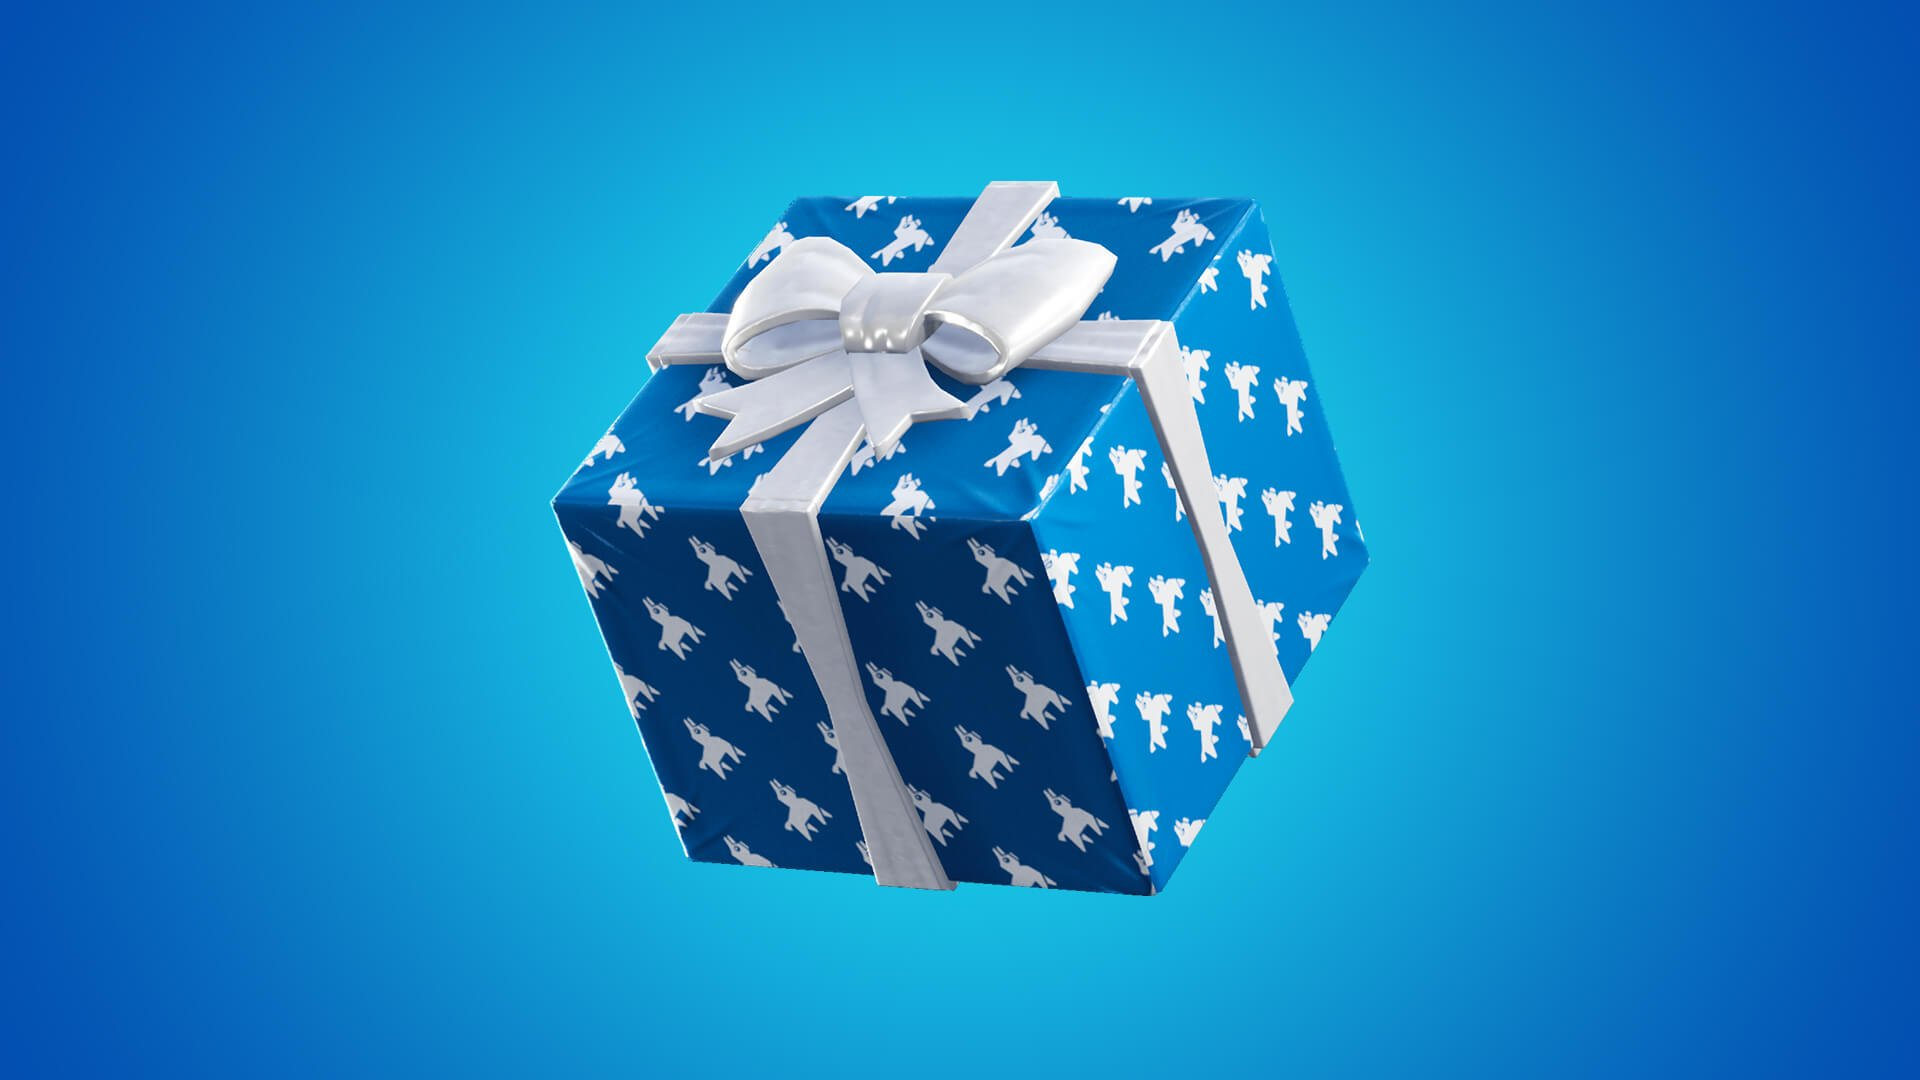 All Fortnite Birthday Celebration challenges